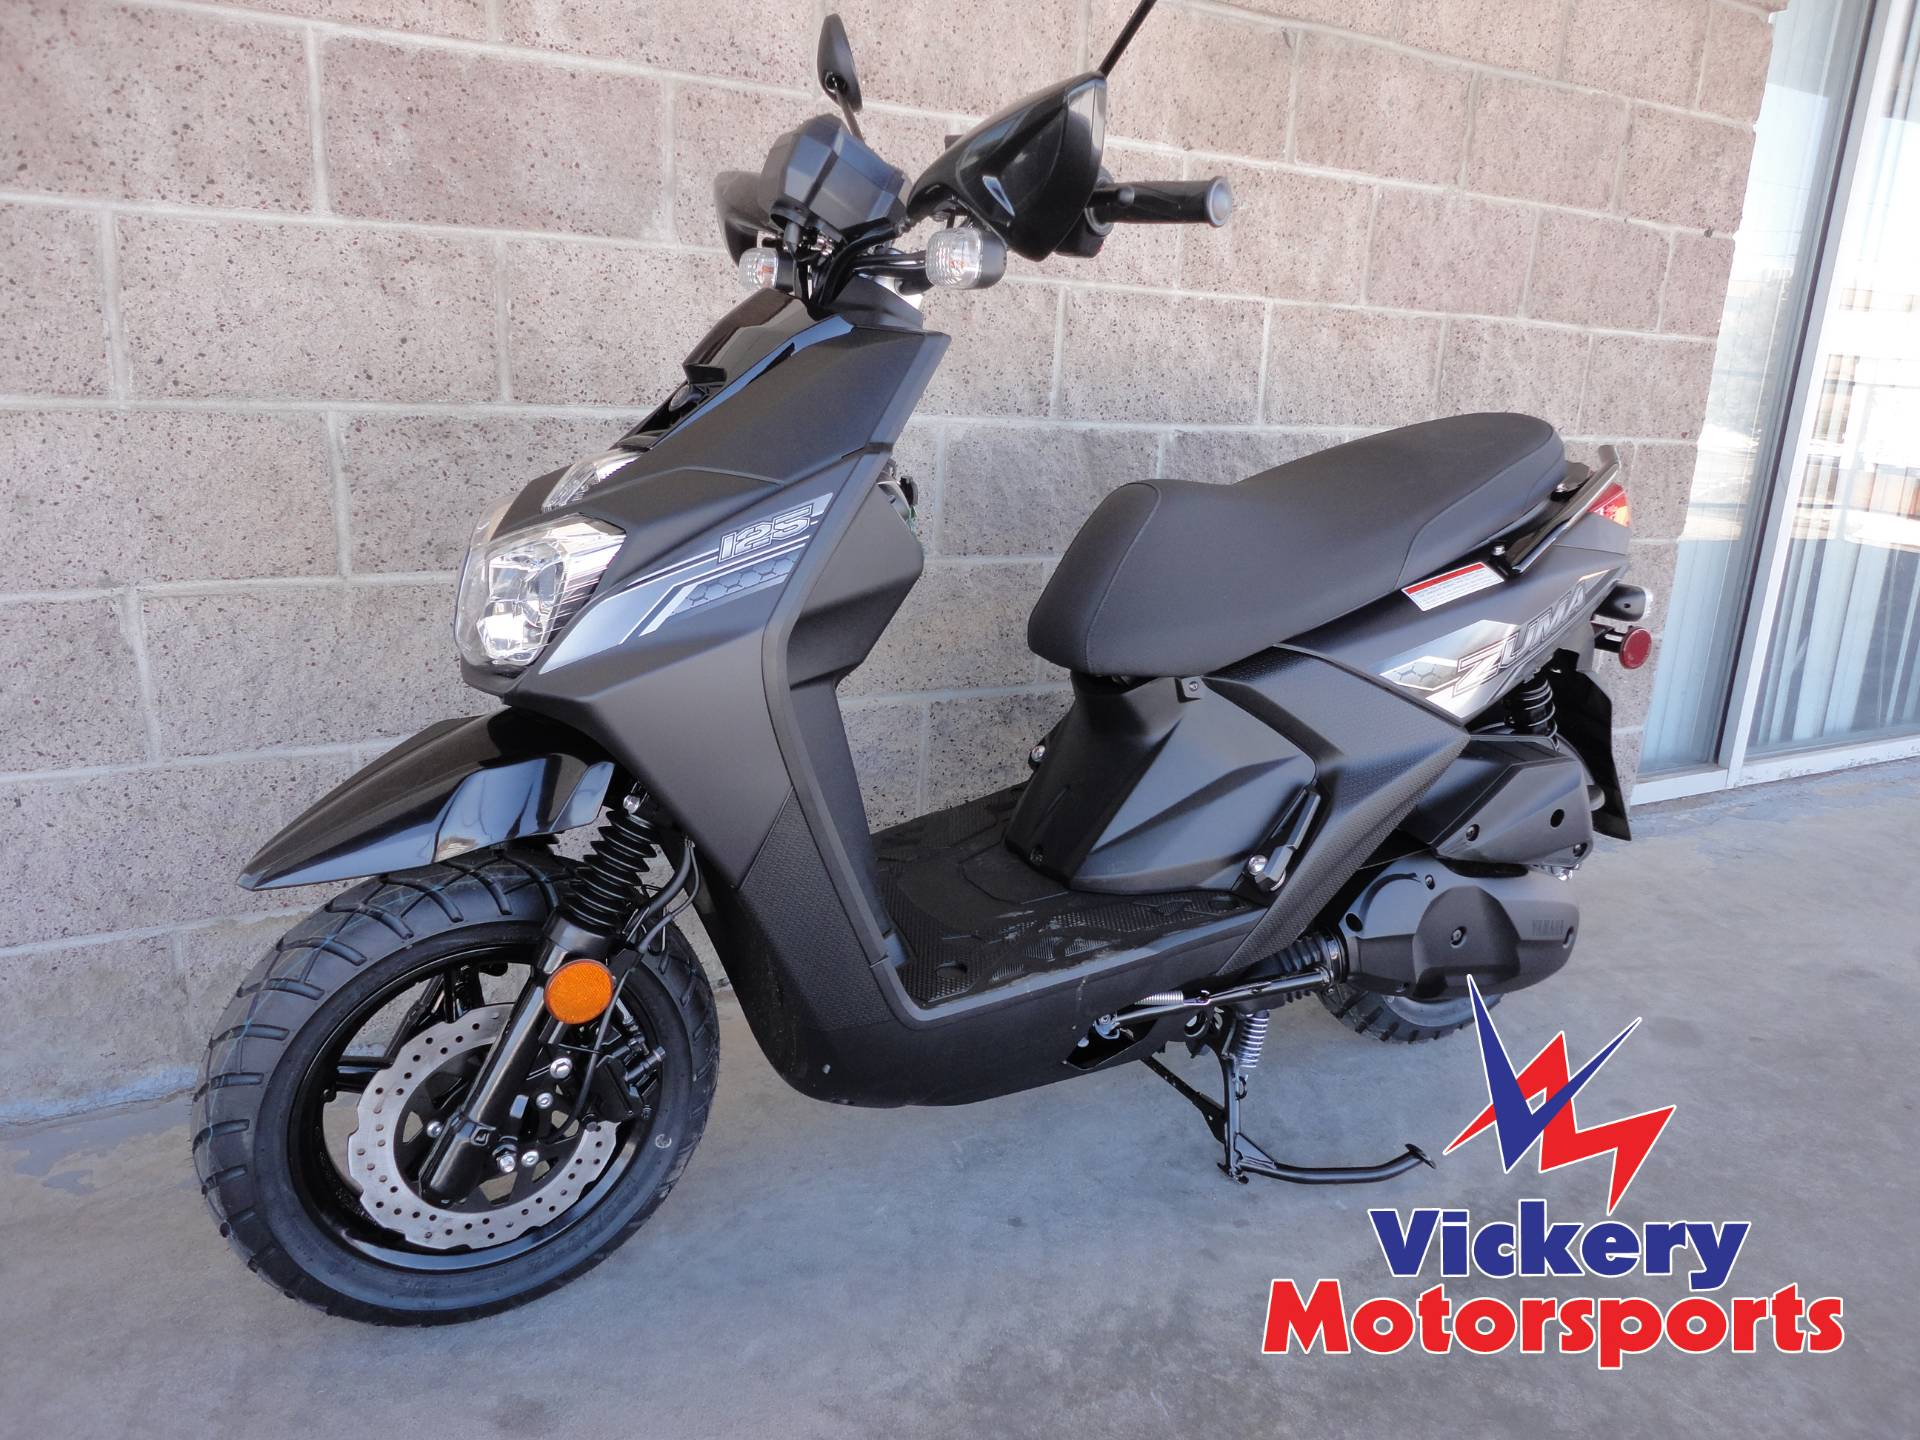 2020 Yamaha Zuma 125 in Denver, Colorado - Photo 1